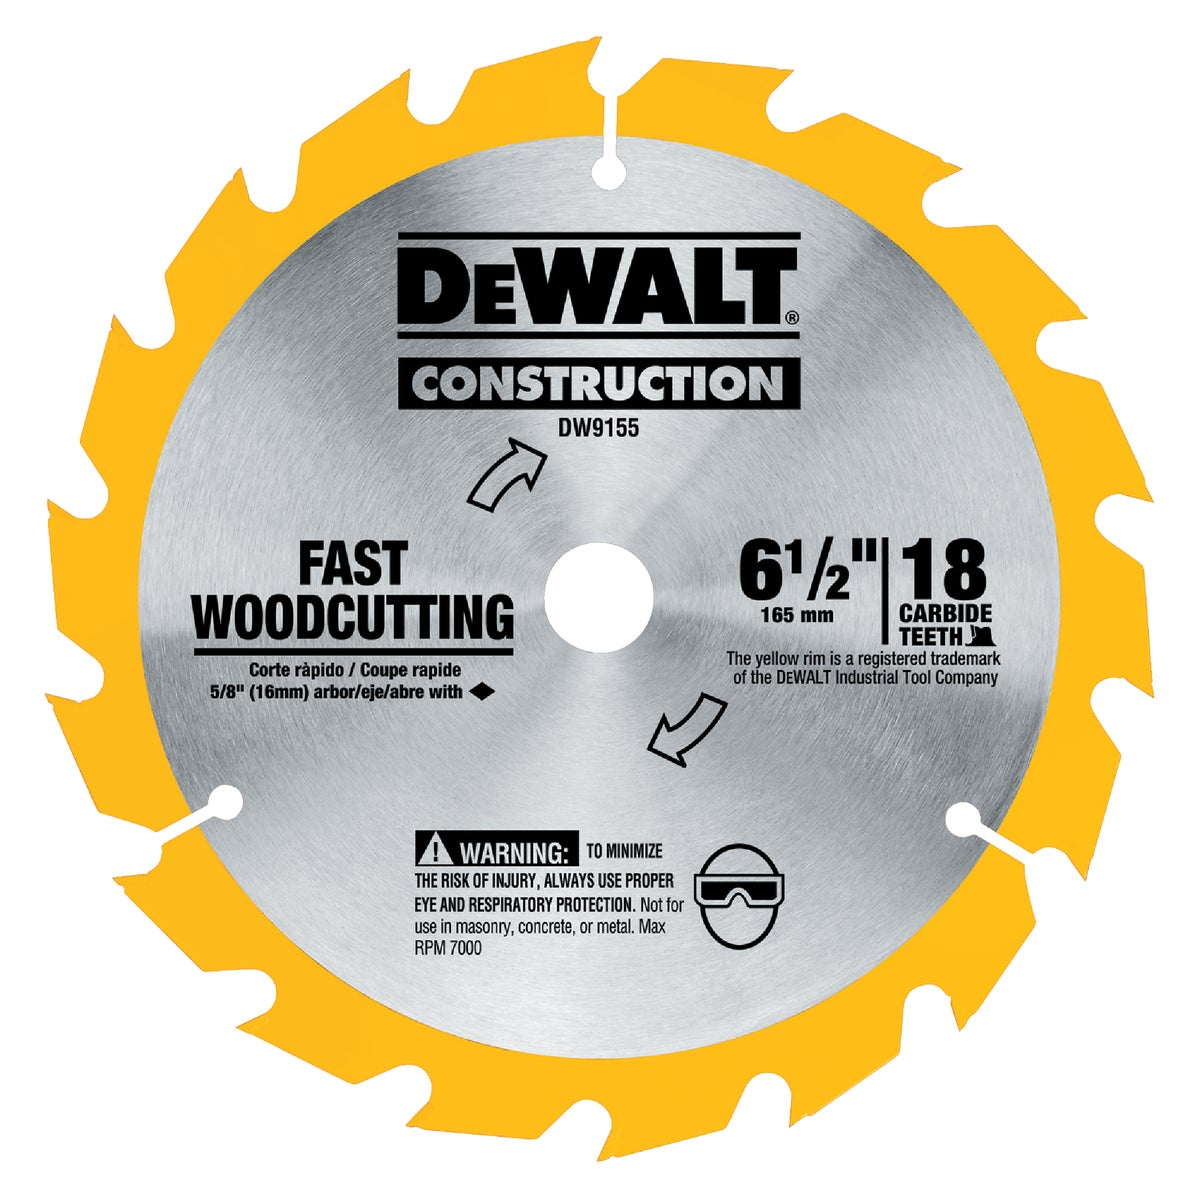 "6-1/2"" 16T CARBIDE BLADE - DW9155 by DeWalt"